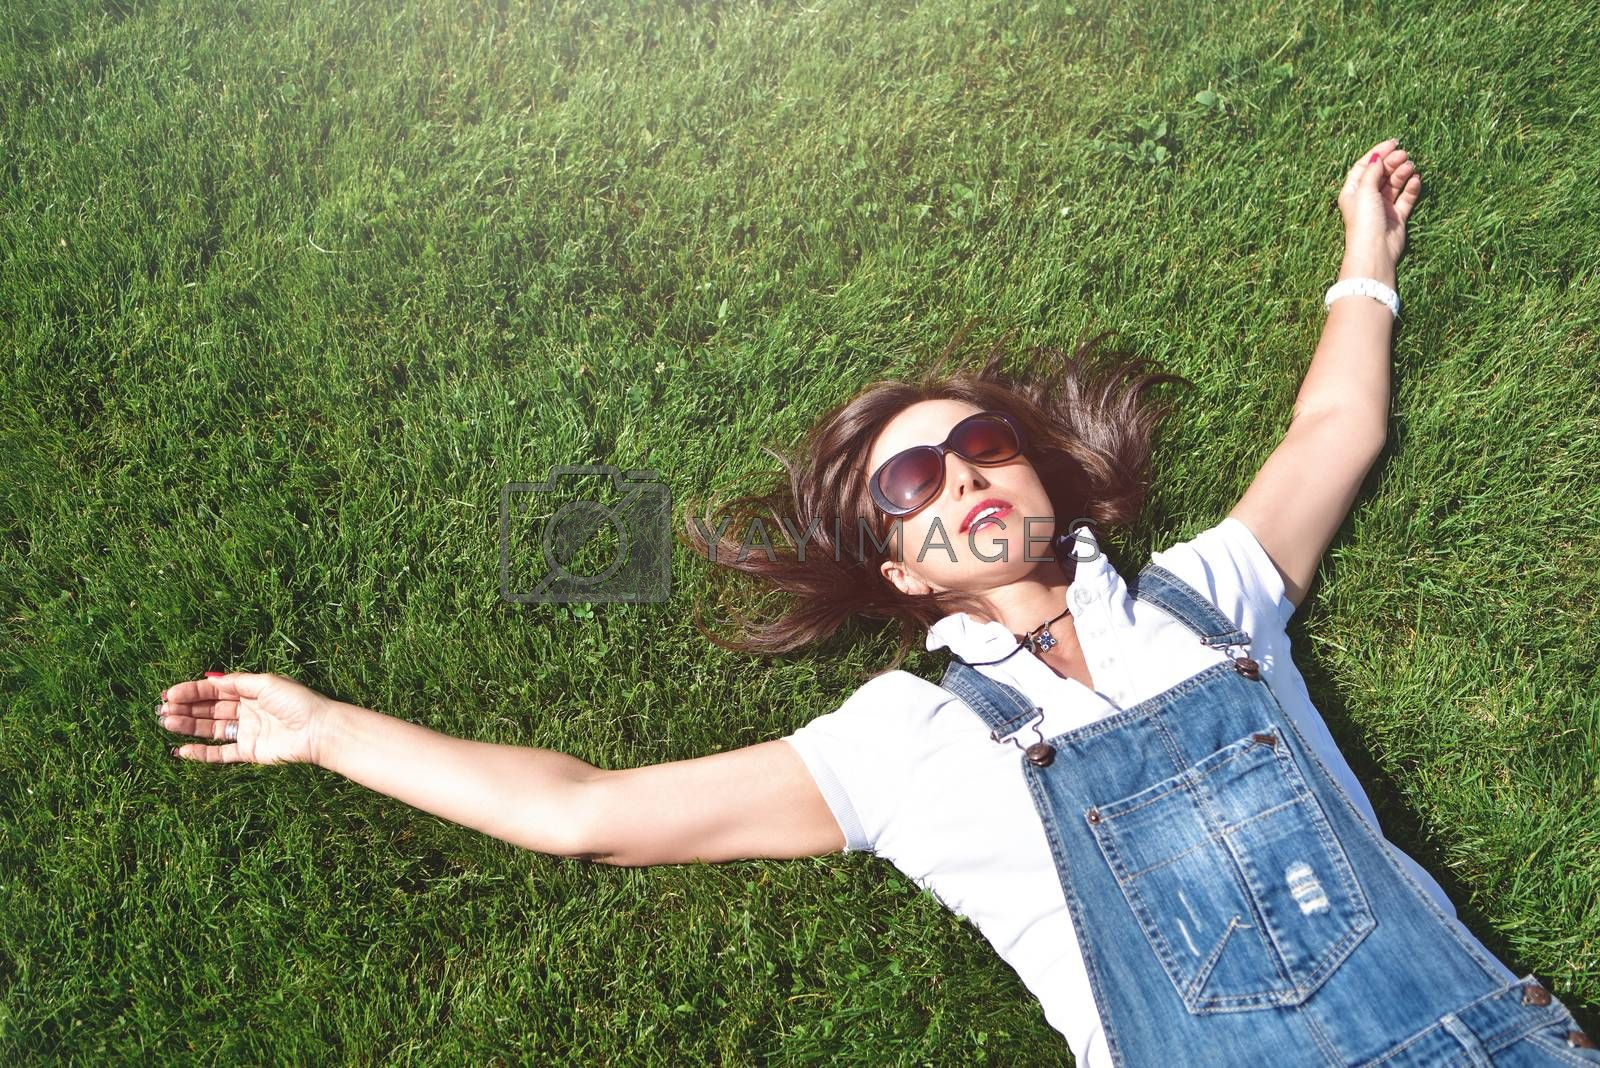 summer-vacation, girl relaxed lying on green grass in an outdoor park. girl in sunglasses enjoying nature lying on grass